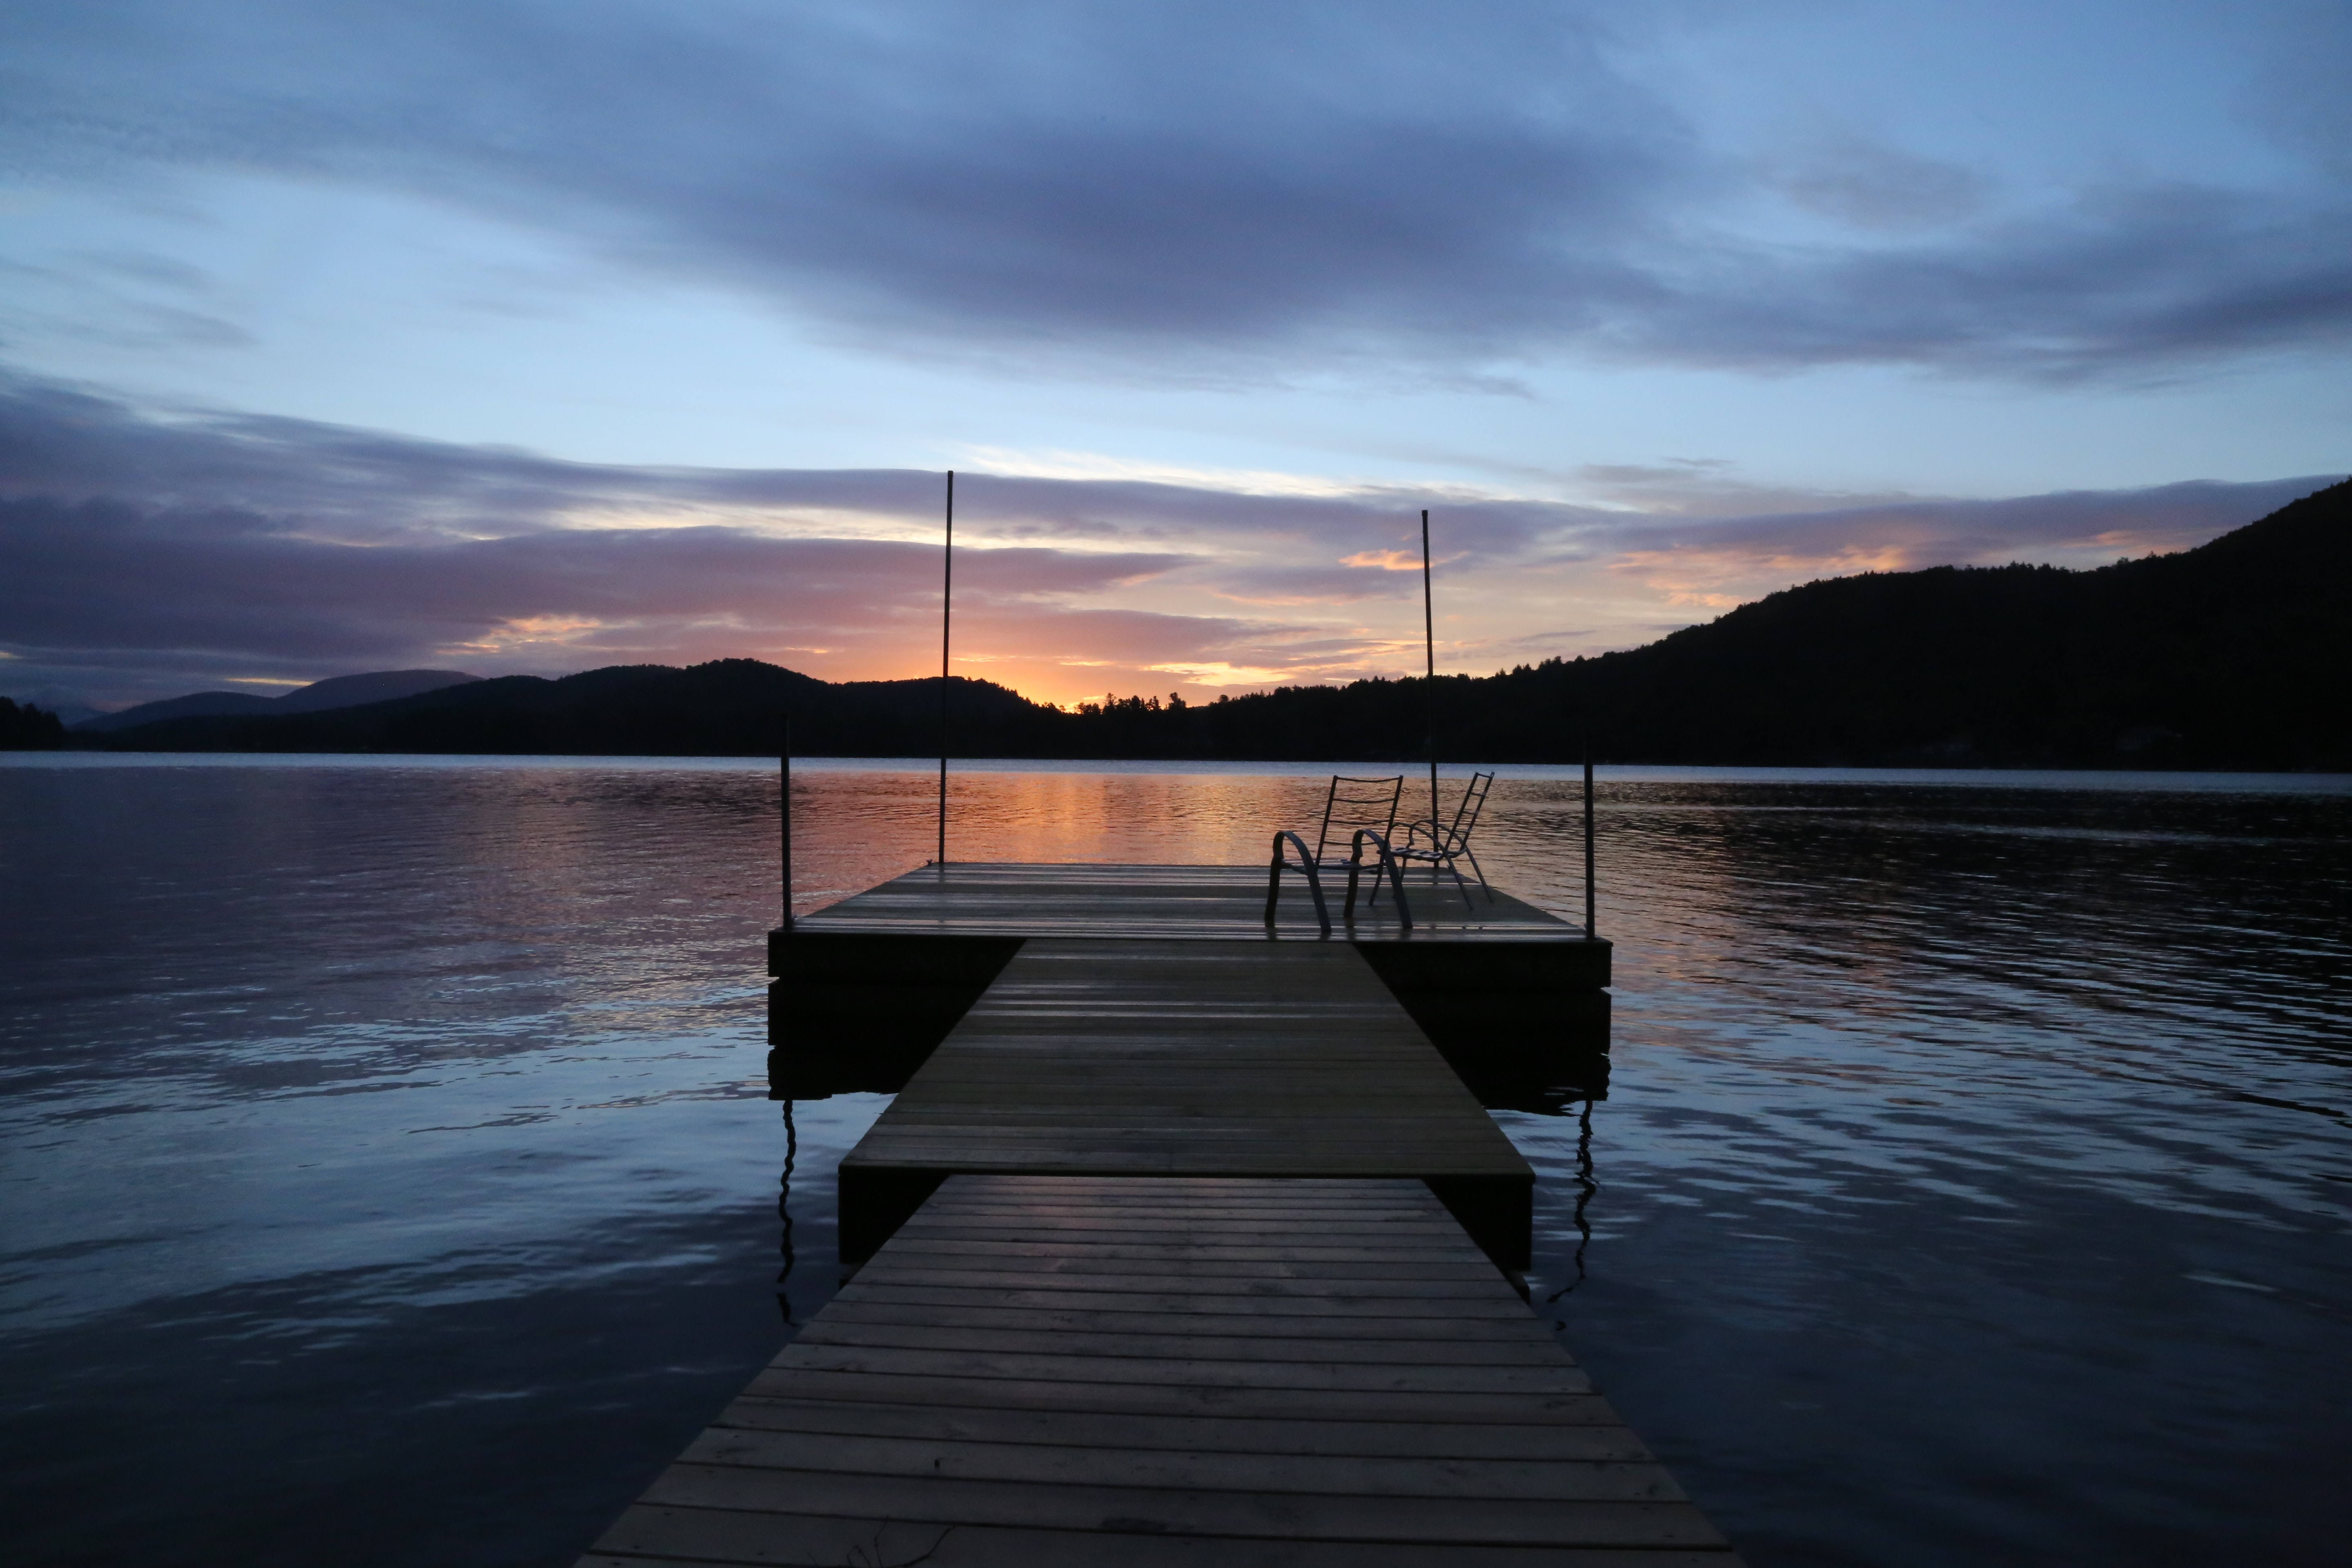 wooden dock at the lake during sunset